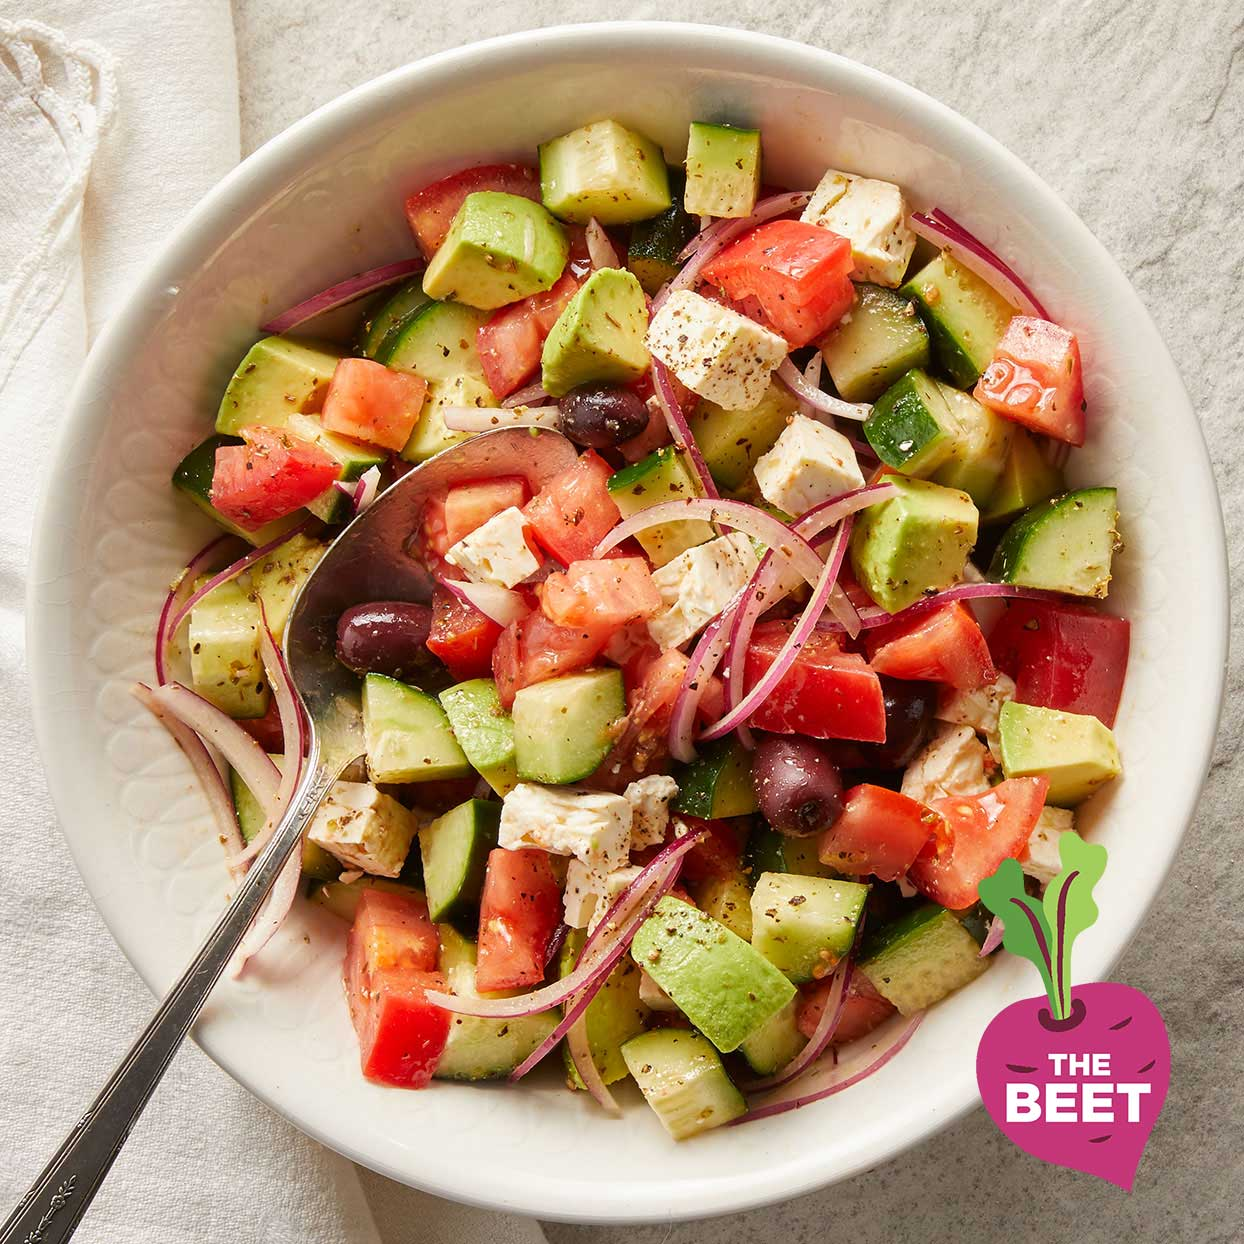 greek salad with chopped vegetables in white bowl with the beet logo overlaid in corner